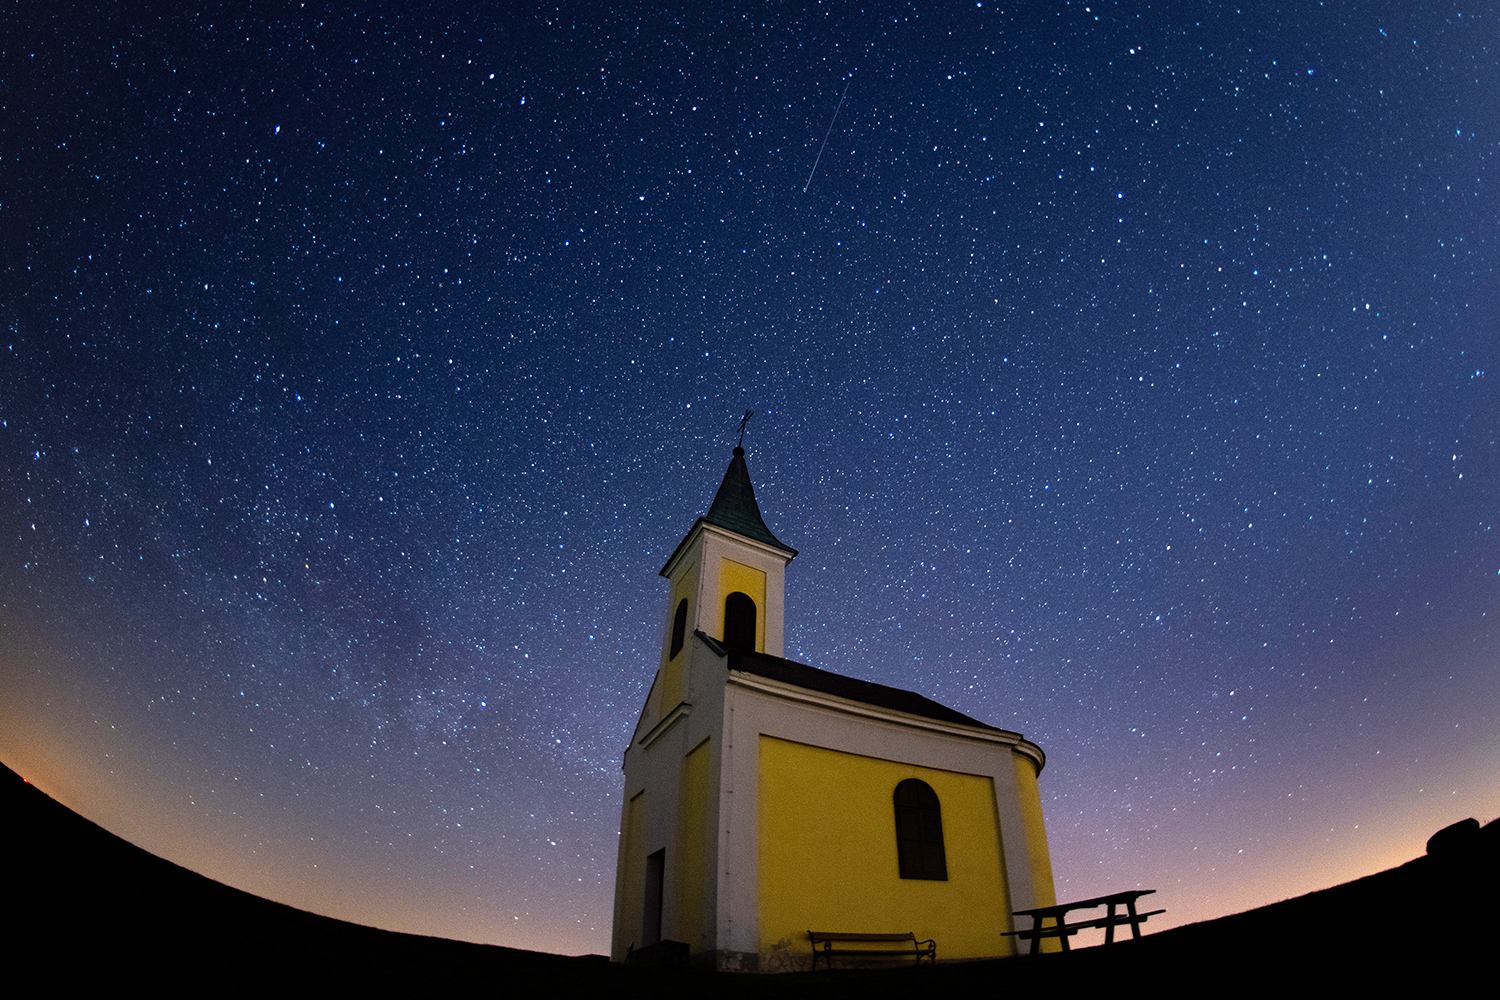 The Lyrids meteor shower streaks across the sky over Michaelskapelle in Niederhollabrunn, Austria, on April 21. Thomas Kronsteiner/Getty Images